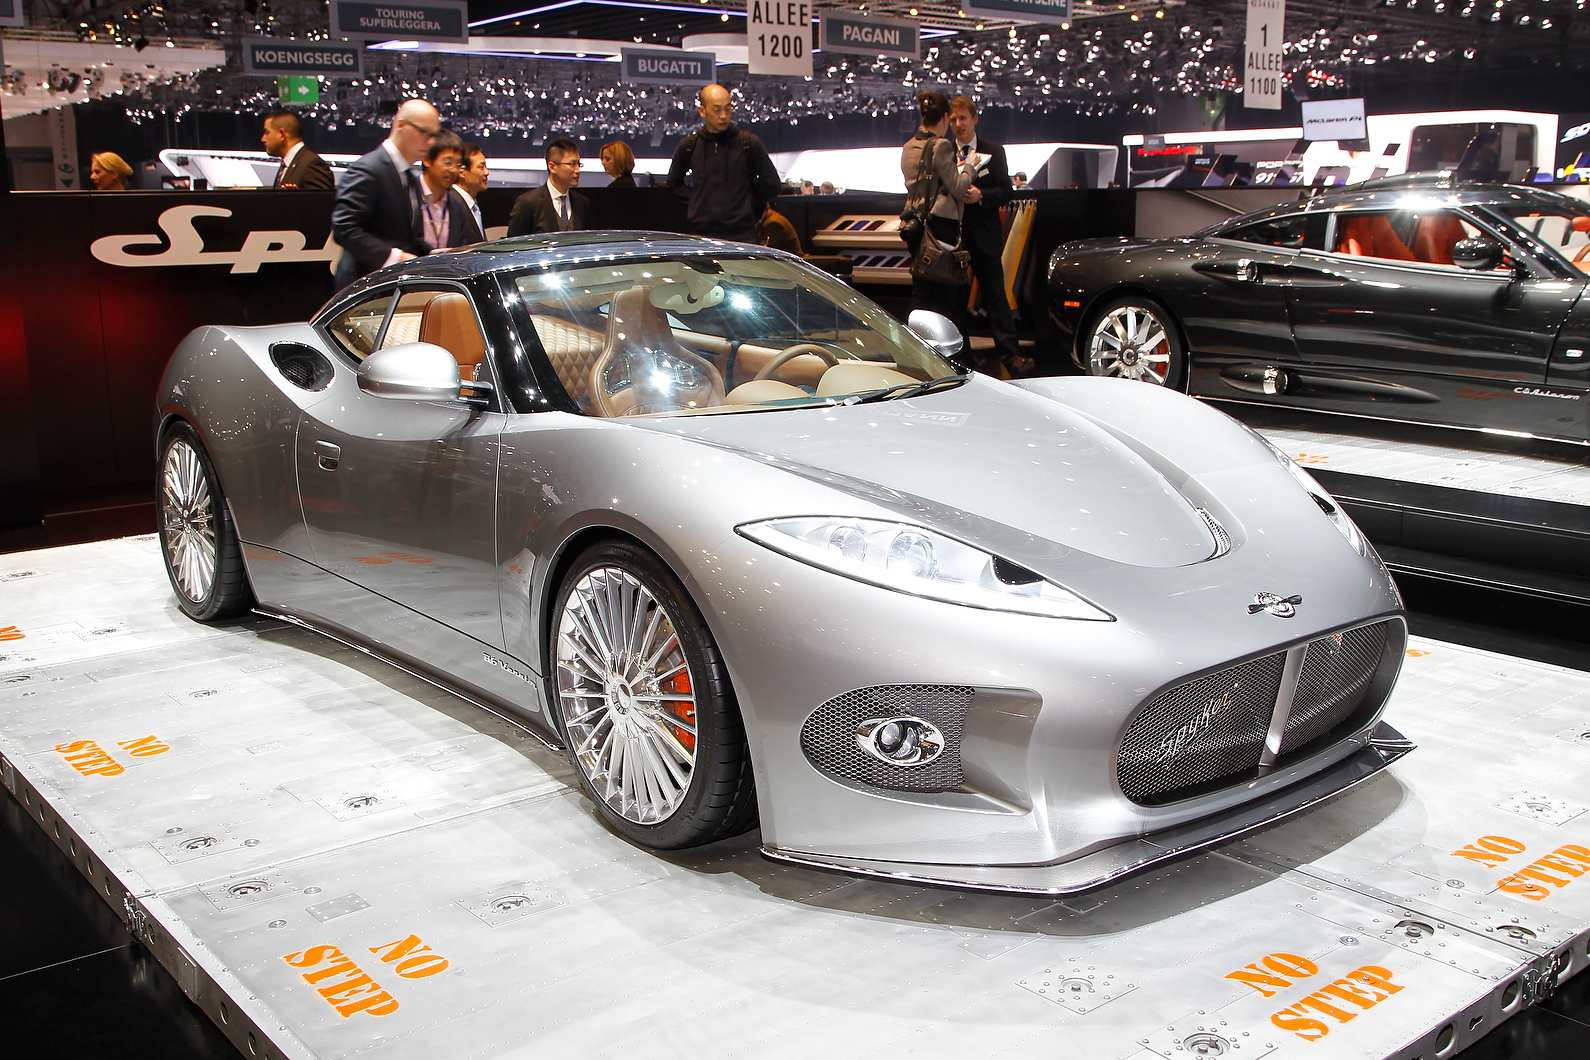 Spyker has pulled the wraps of its new Porsche 911 rival, the Spyker B6 Venator at the Geneva motor show.